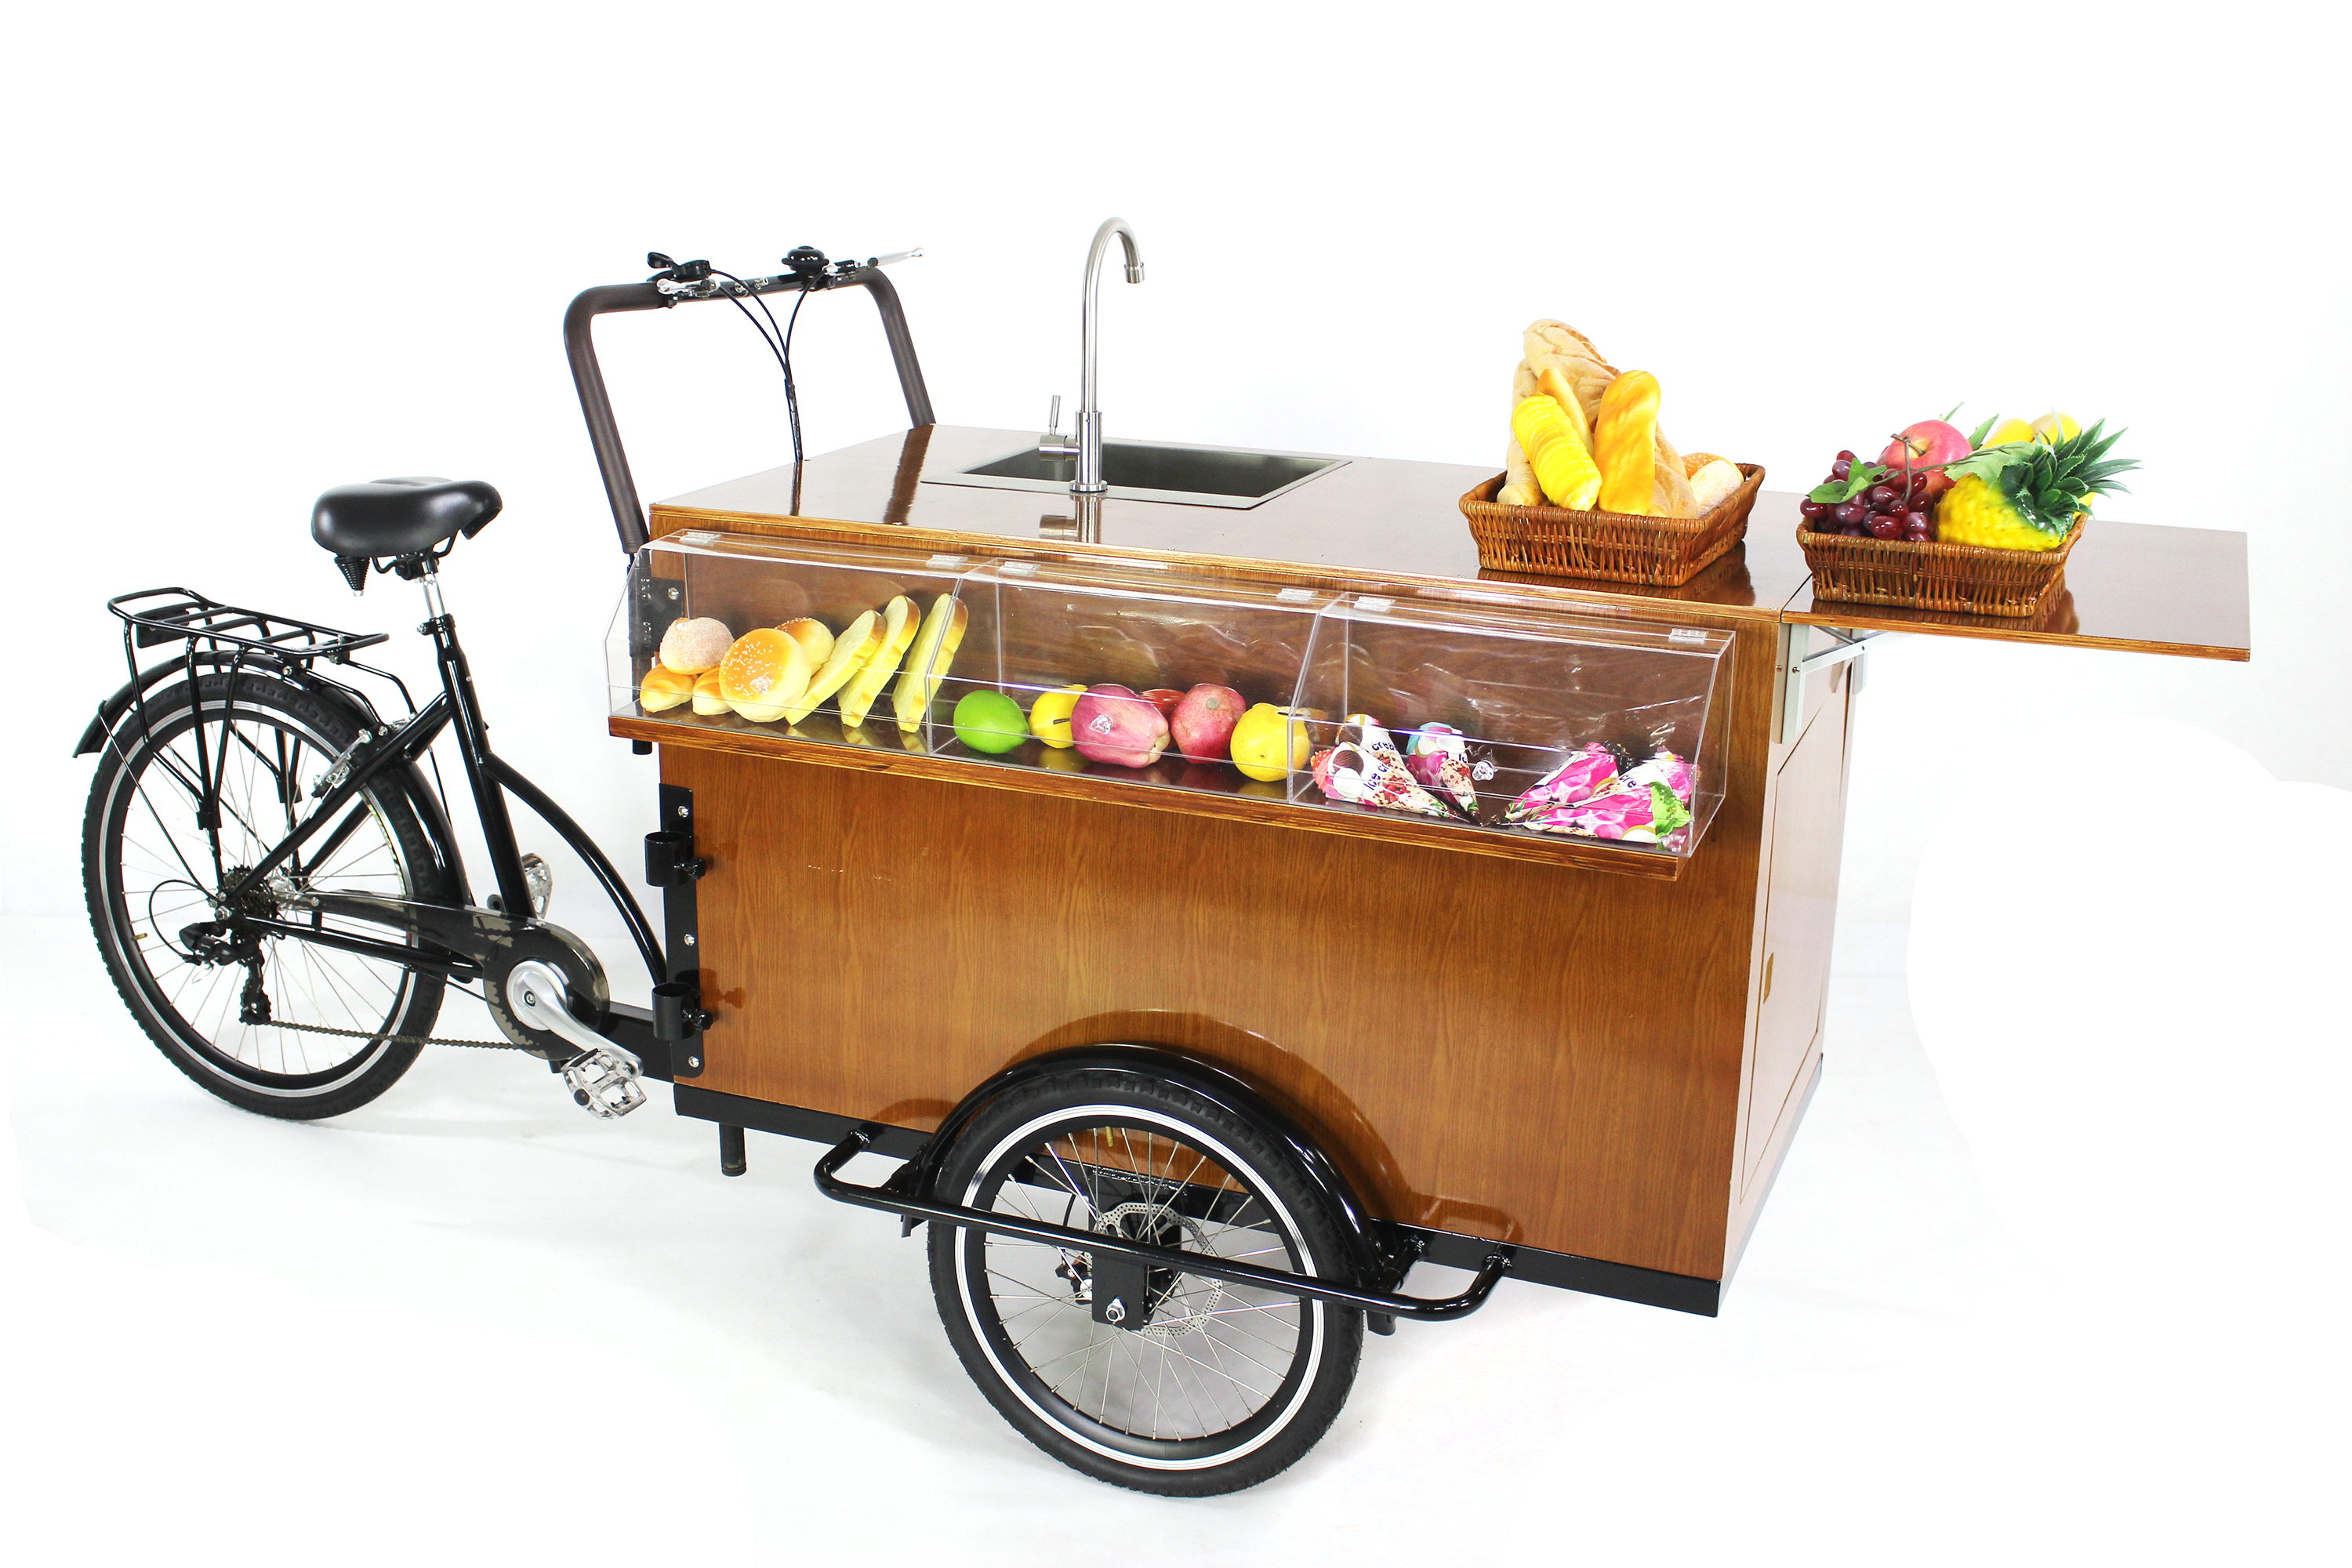 Convenient food tricycle pedal/electric mobile food cart bike food trailer coffee kiosk for sale